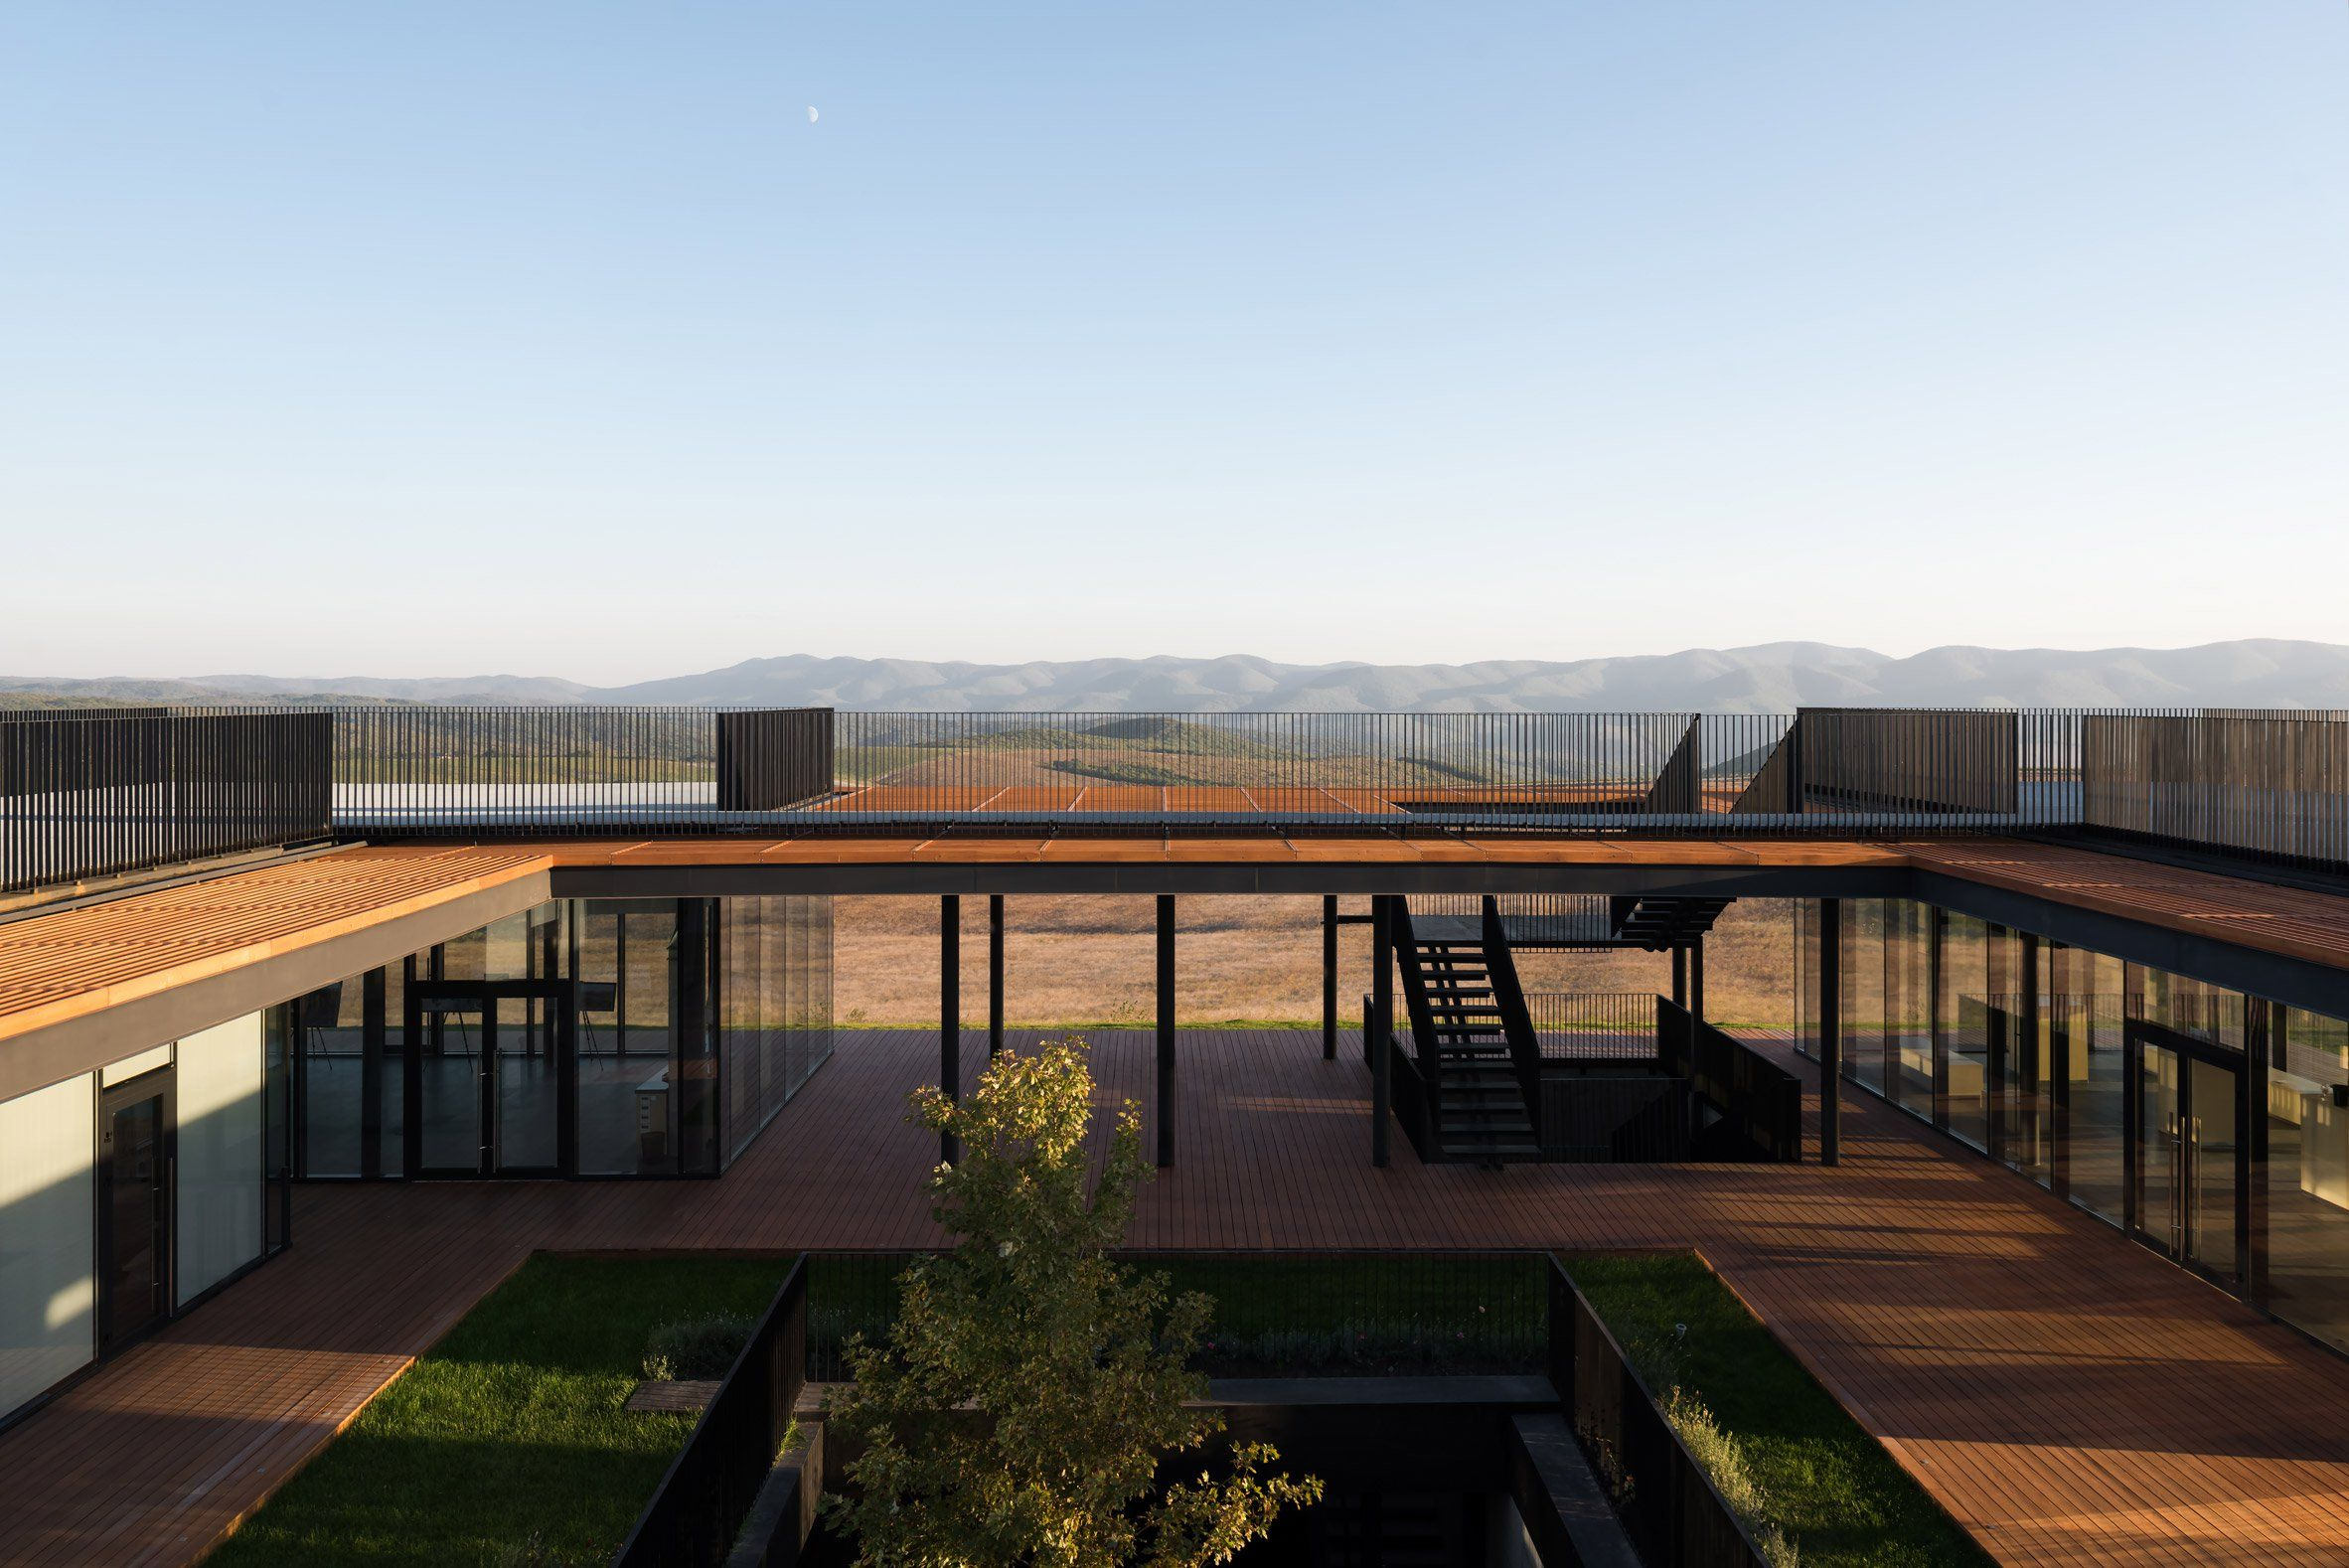 Gai Kodzor Winery Is A Concrete And Glass Building Perched On A Hilltop In  Russia